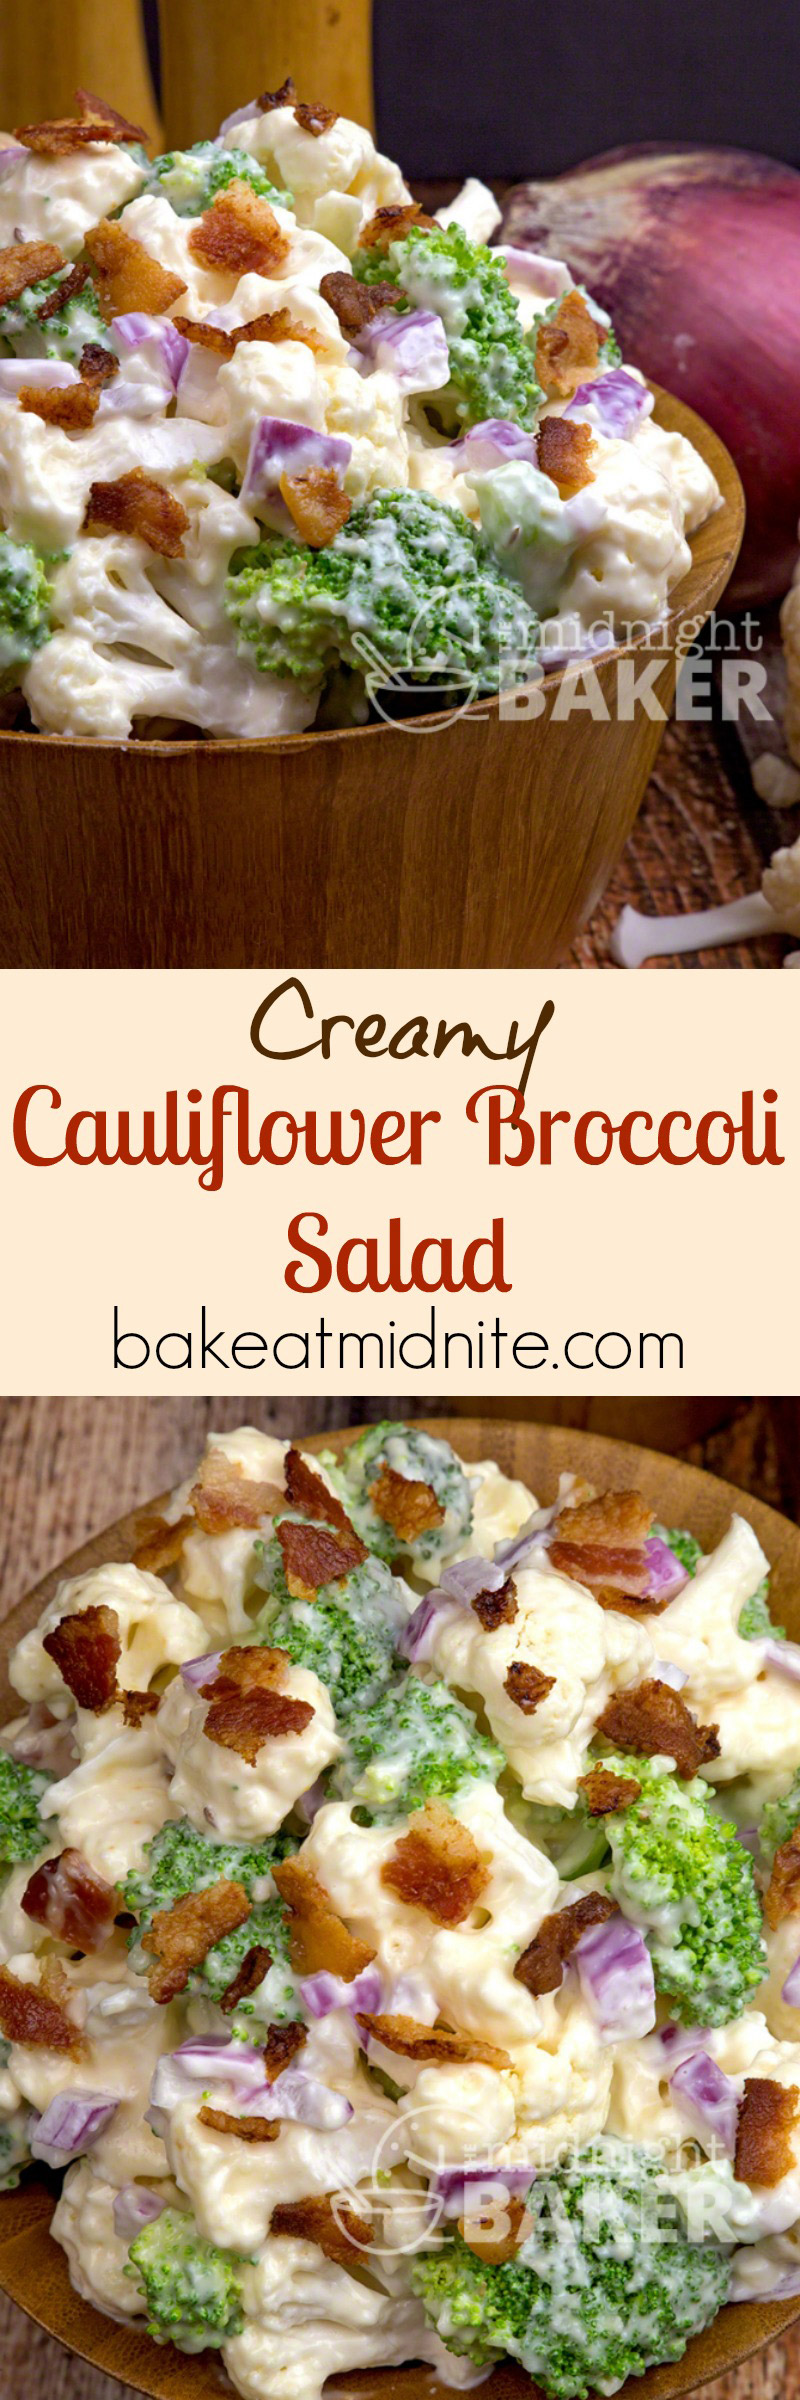 Crunchy raw cauliflower and broccoli in an awesome creamy dressing and a hint of bacon.